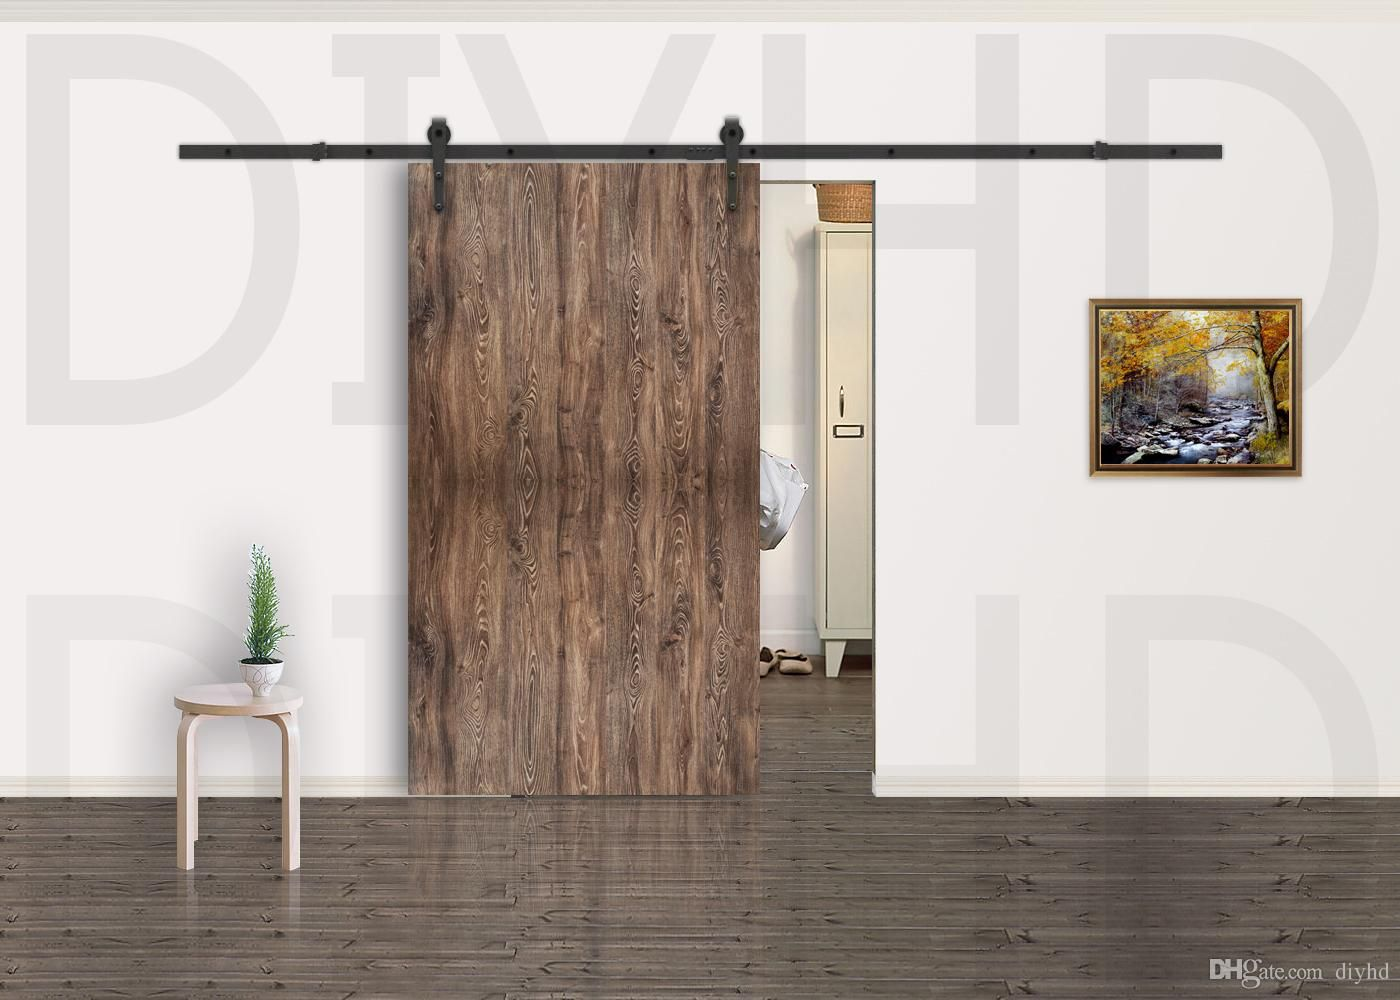 6ft 8ft 10ft Rustic Black Sliding Barn Door Hardware Modern Double Barn Wood Door Hangi Barn Door Hardware Interior Sliding Barn Doors Modern Sliding Barn Door